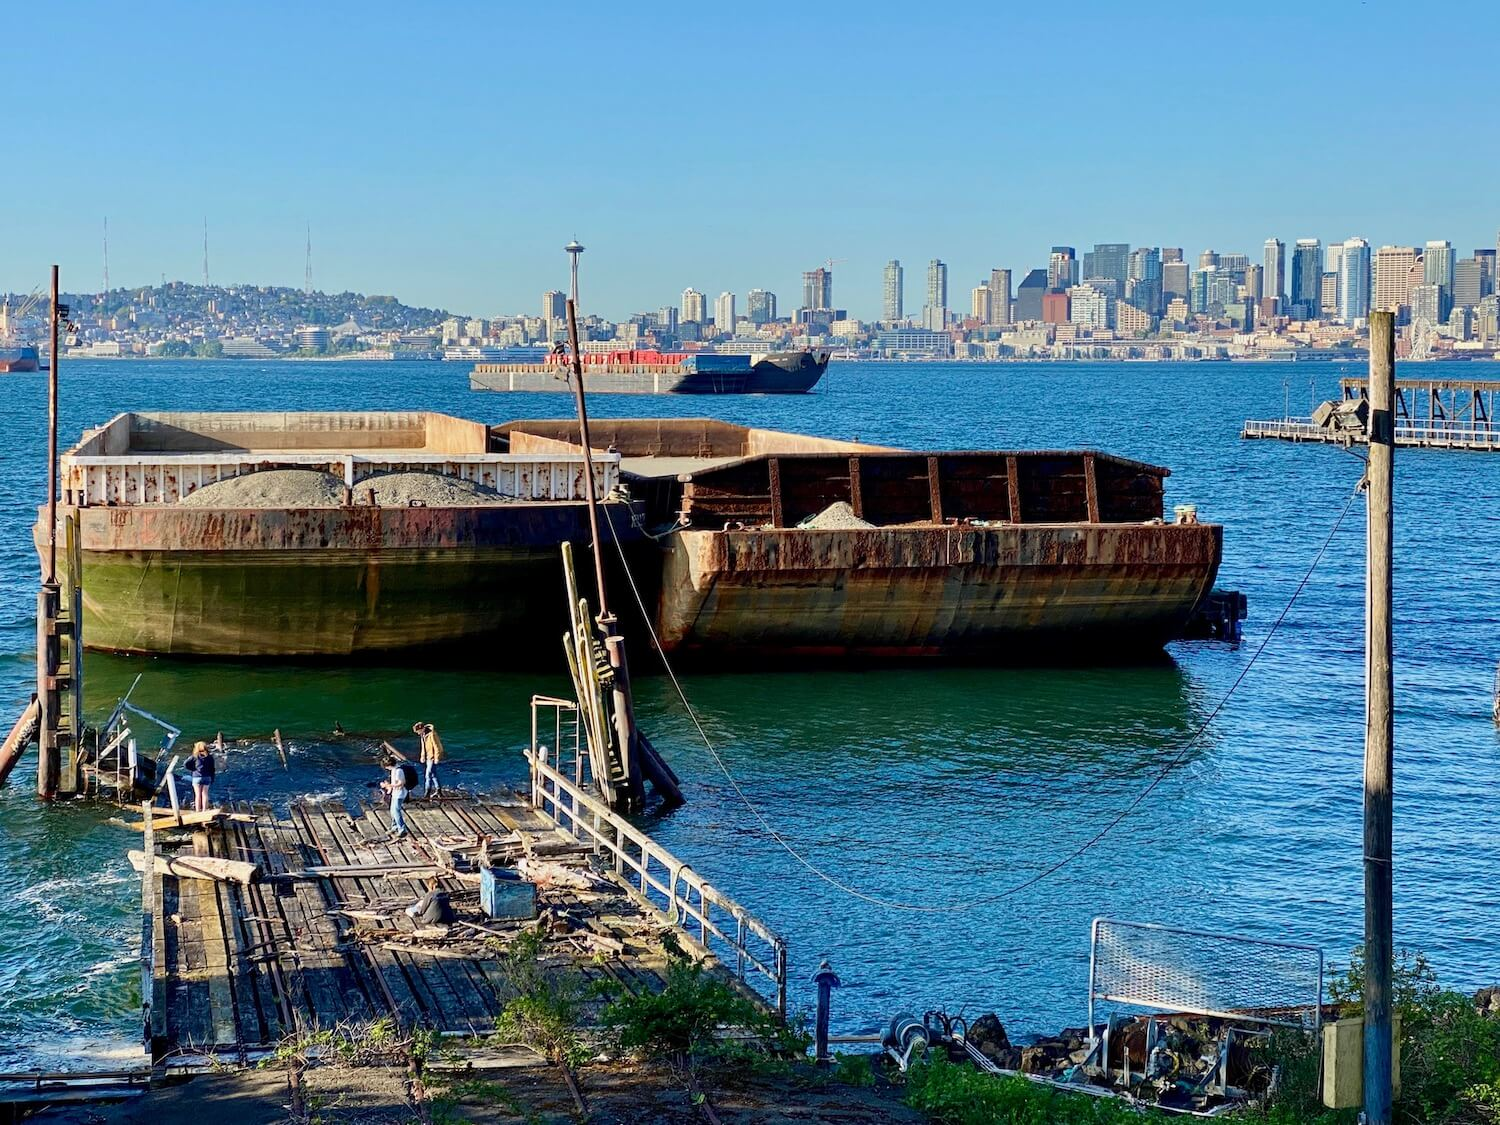 Crossing from Jack Block part to Joe Block Park in West Seattle, a view of the Seattle skyline is visible in the background while two large barges are docked directly in front of a dilapidated railroad dock ending in the Puget Sound. There are three people investigating near the waters edge and the greenish blue sound is flat and calm around the marine vessels.